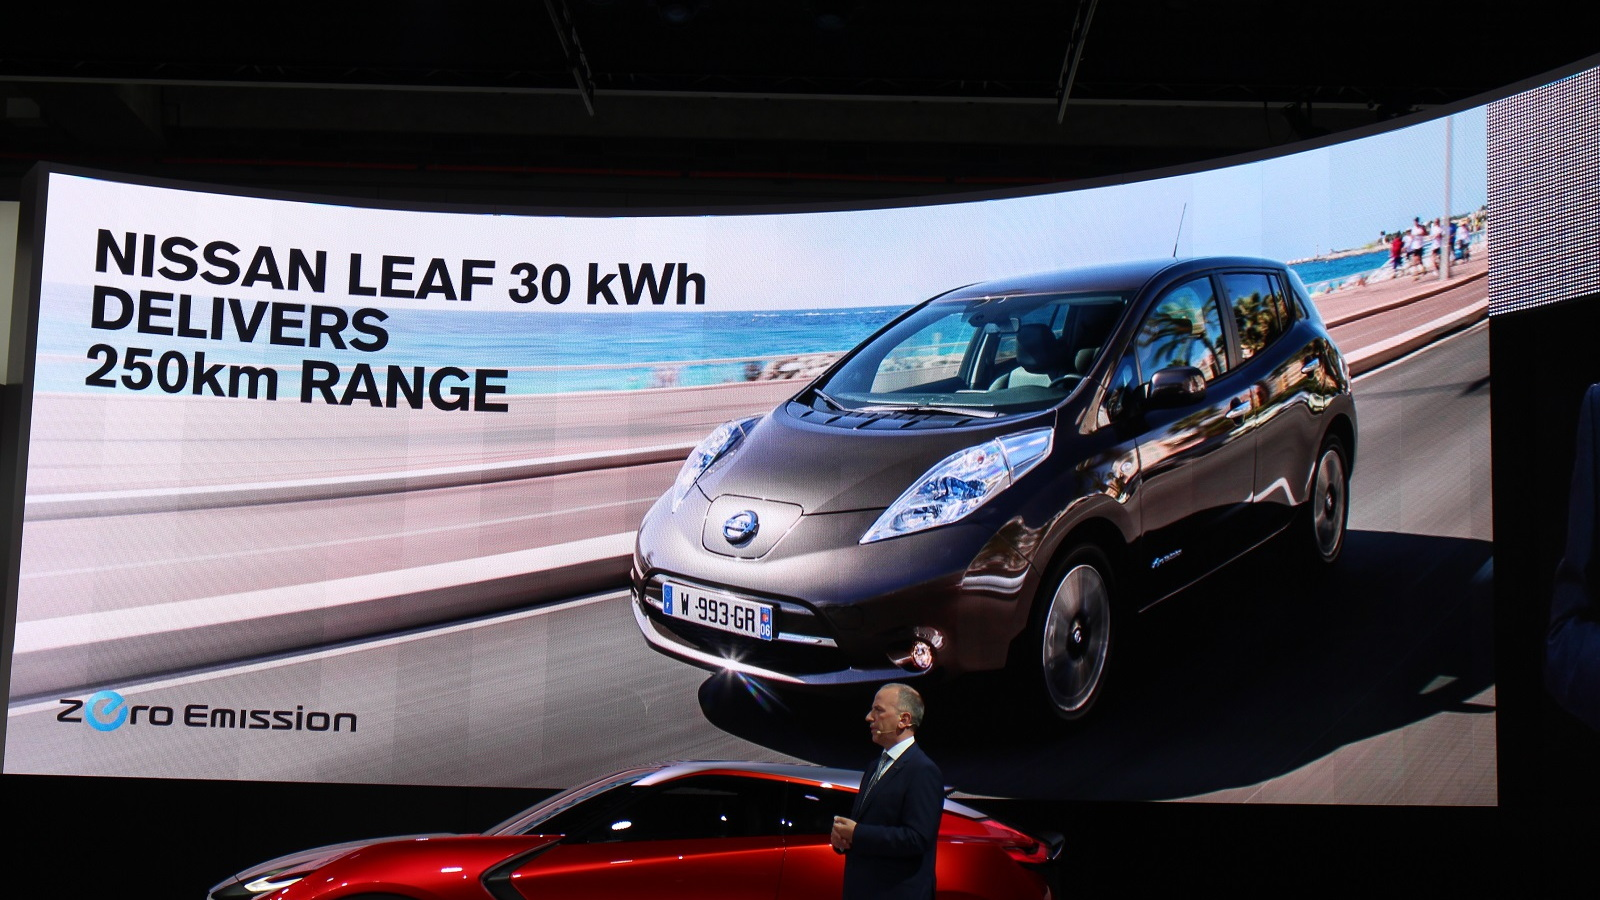 2016 Nissan Leaf range quoting at 250 km (155 miles) in Europe, Frankfurt Auto Show, Sep 2015